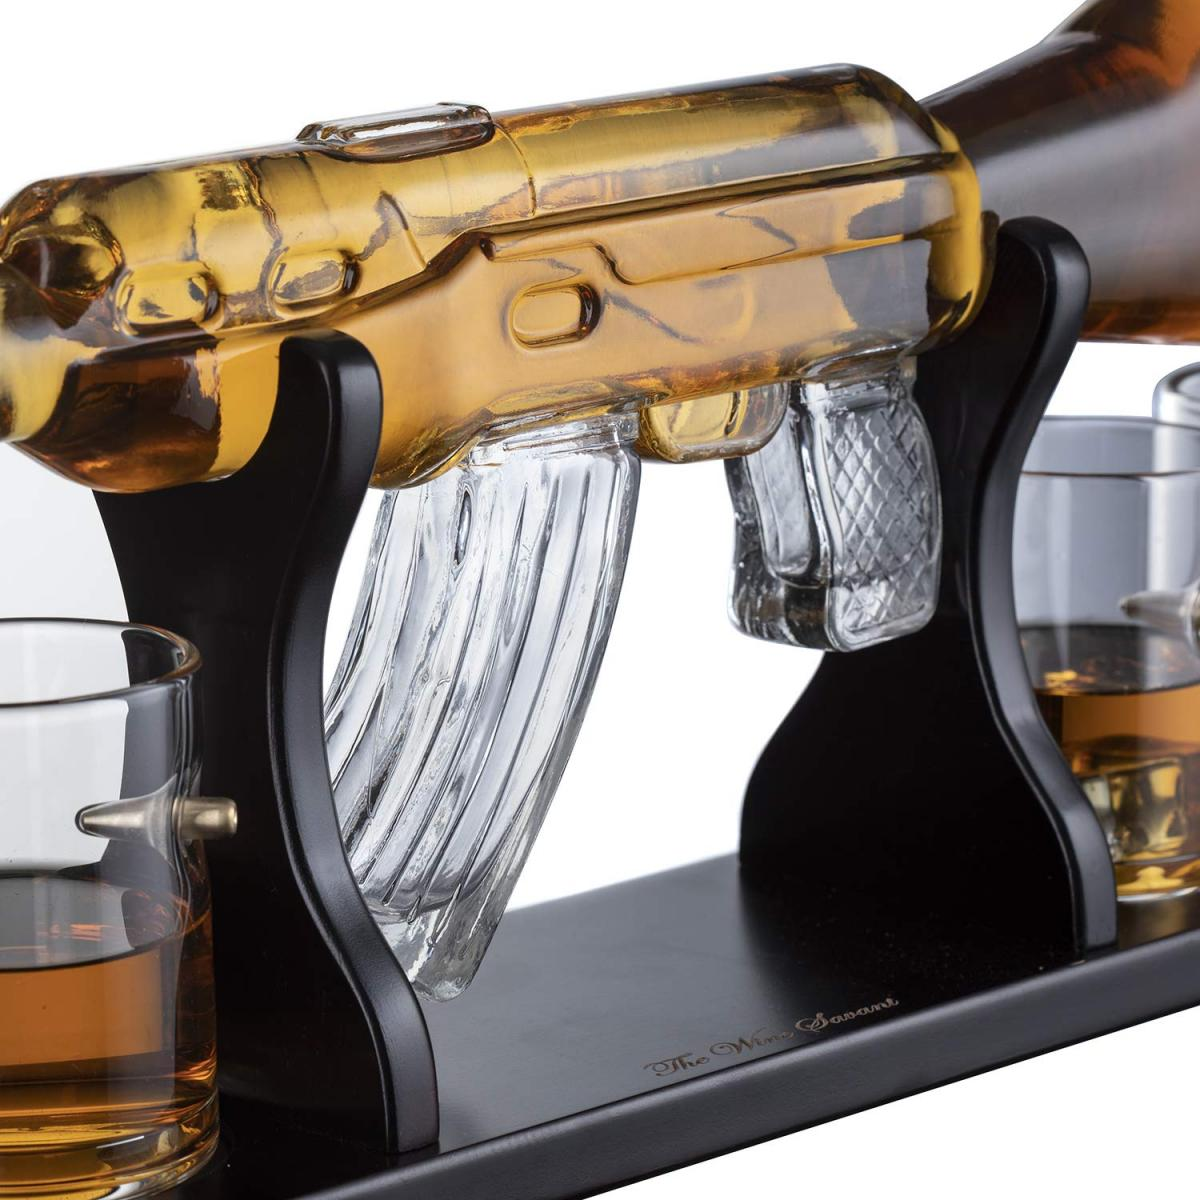 Glass AR-15 Rifle Decanter - Classy M16 Gun Whiskey Decanter For Home Bar